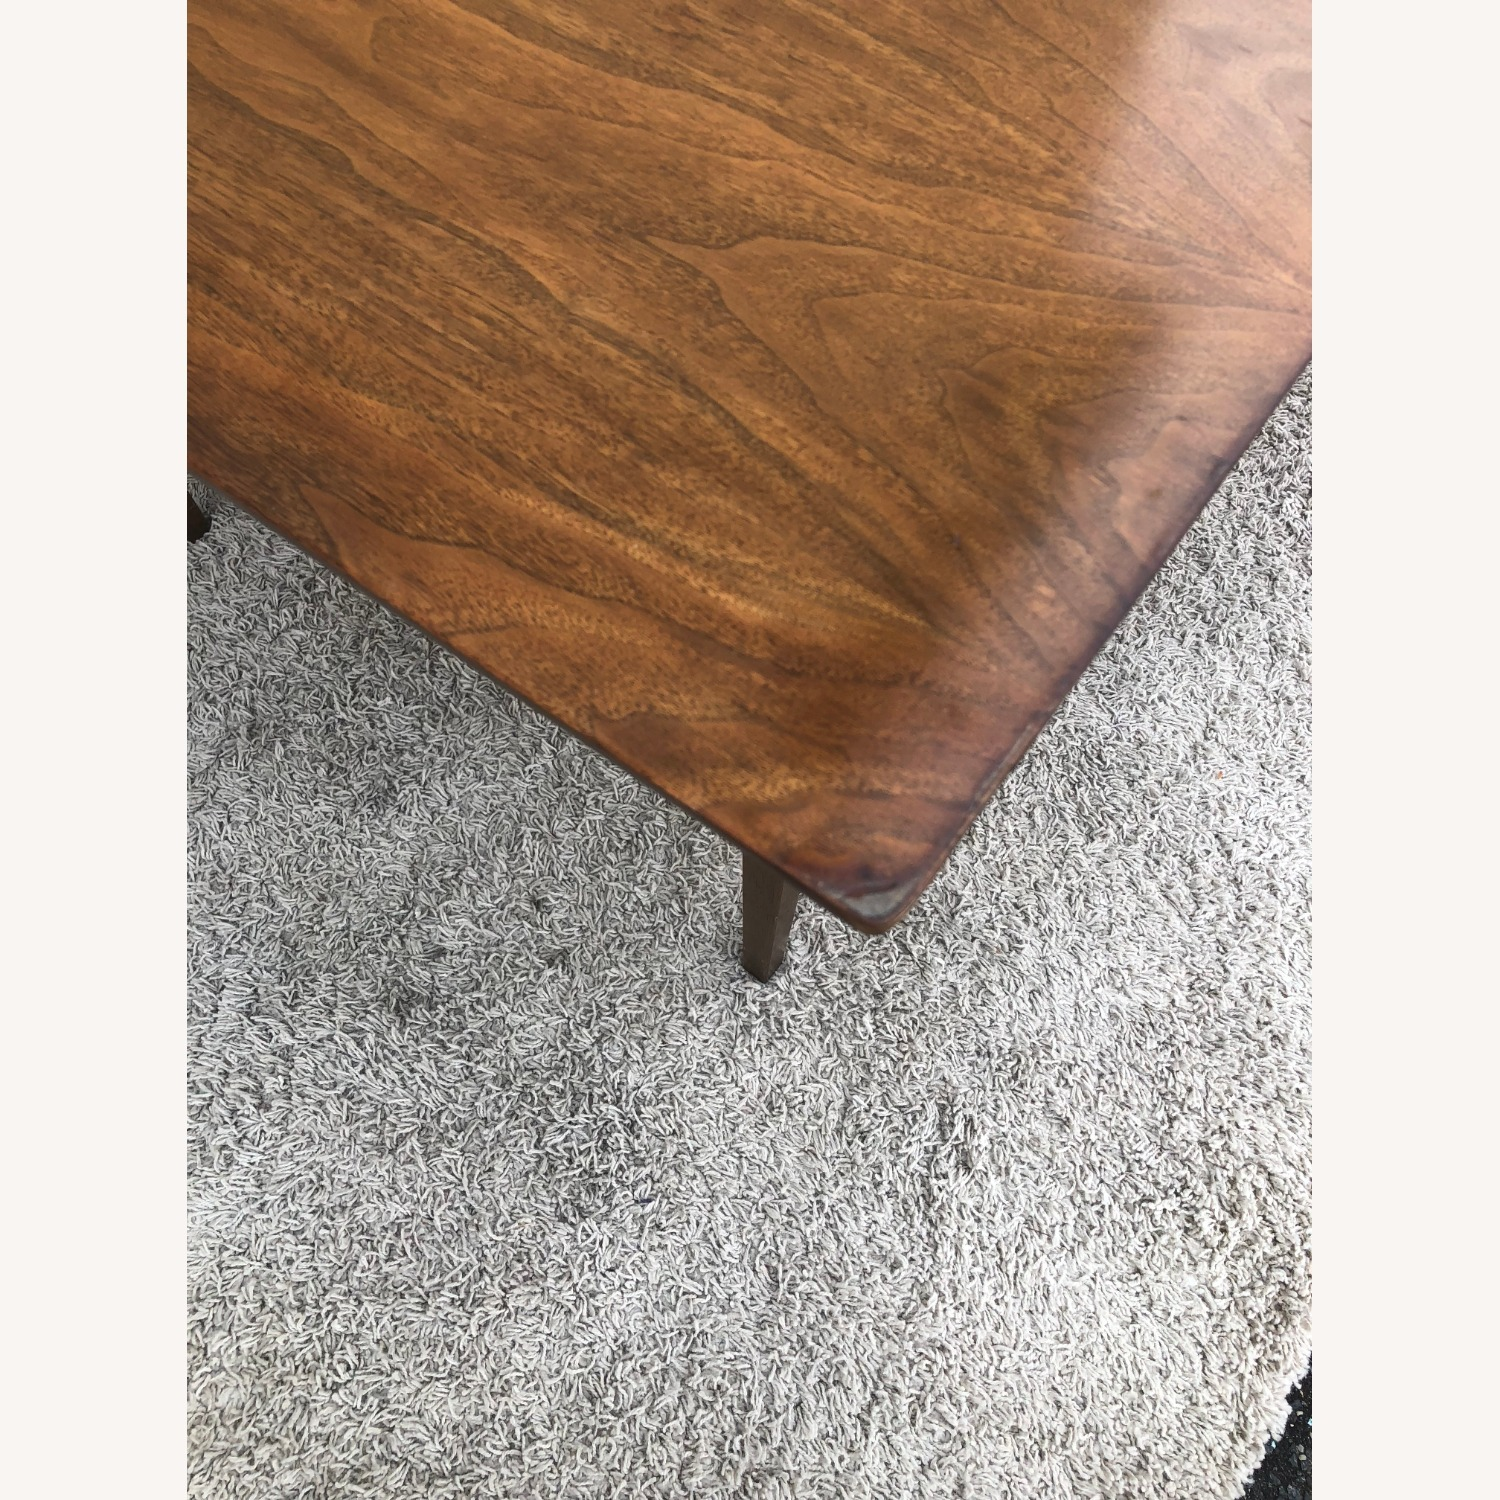 Mid Century Walnut Dining Table with 2 Leafs - image-9